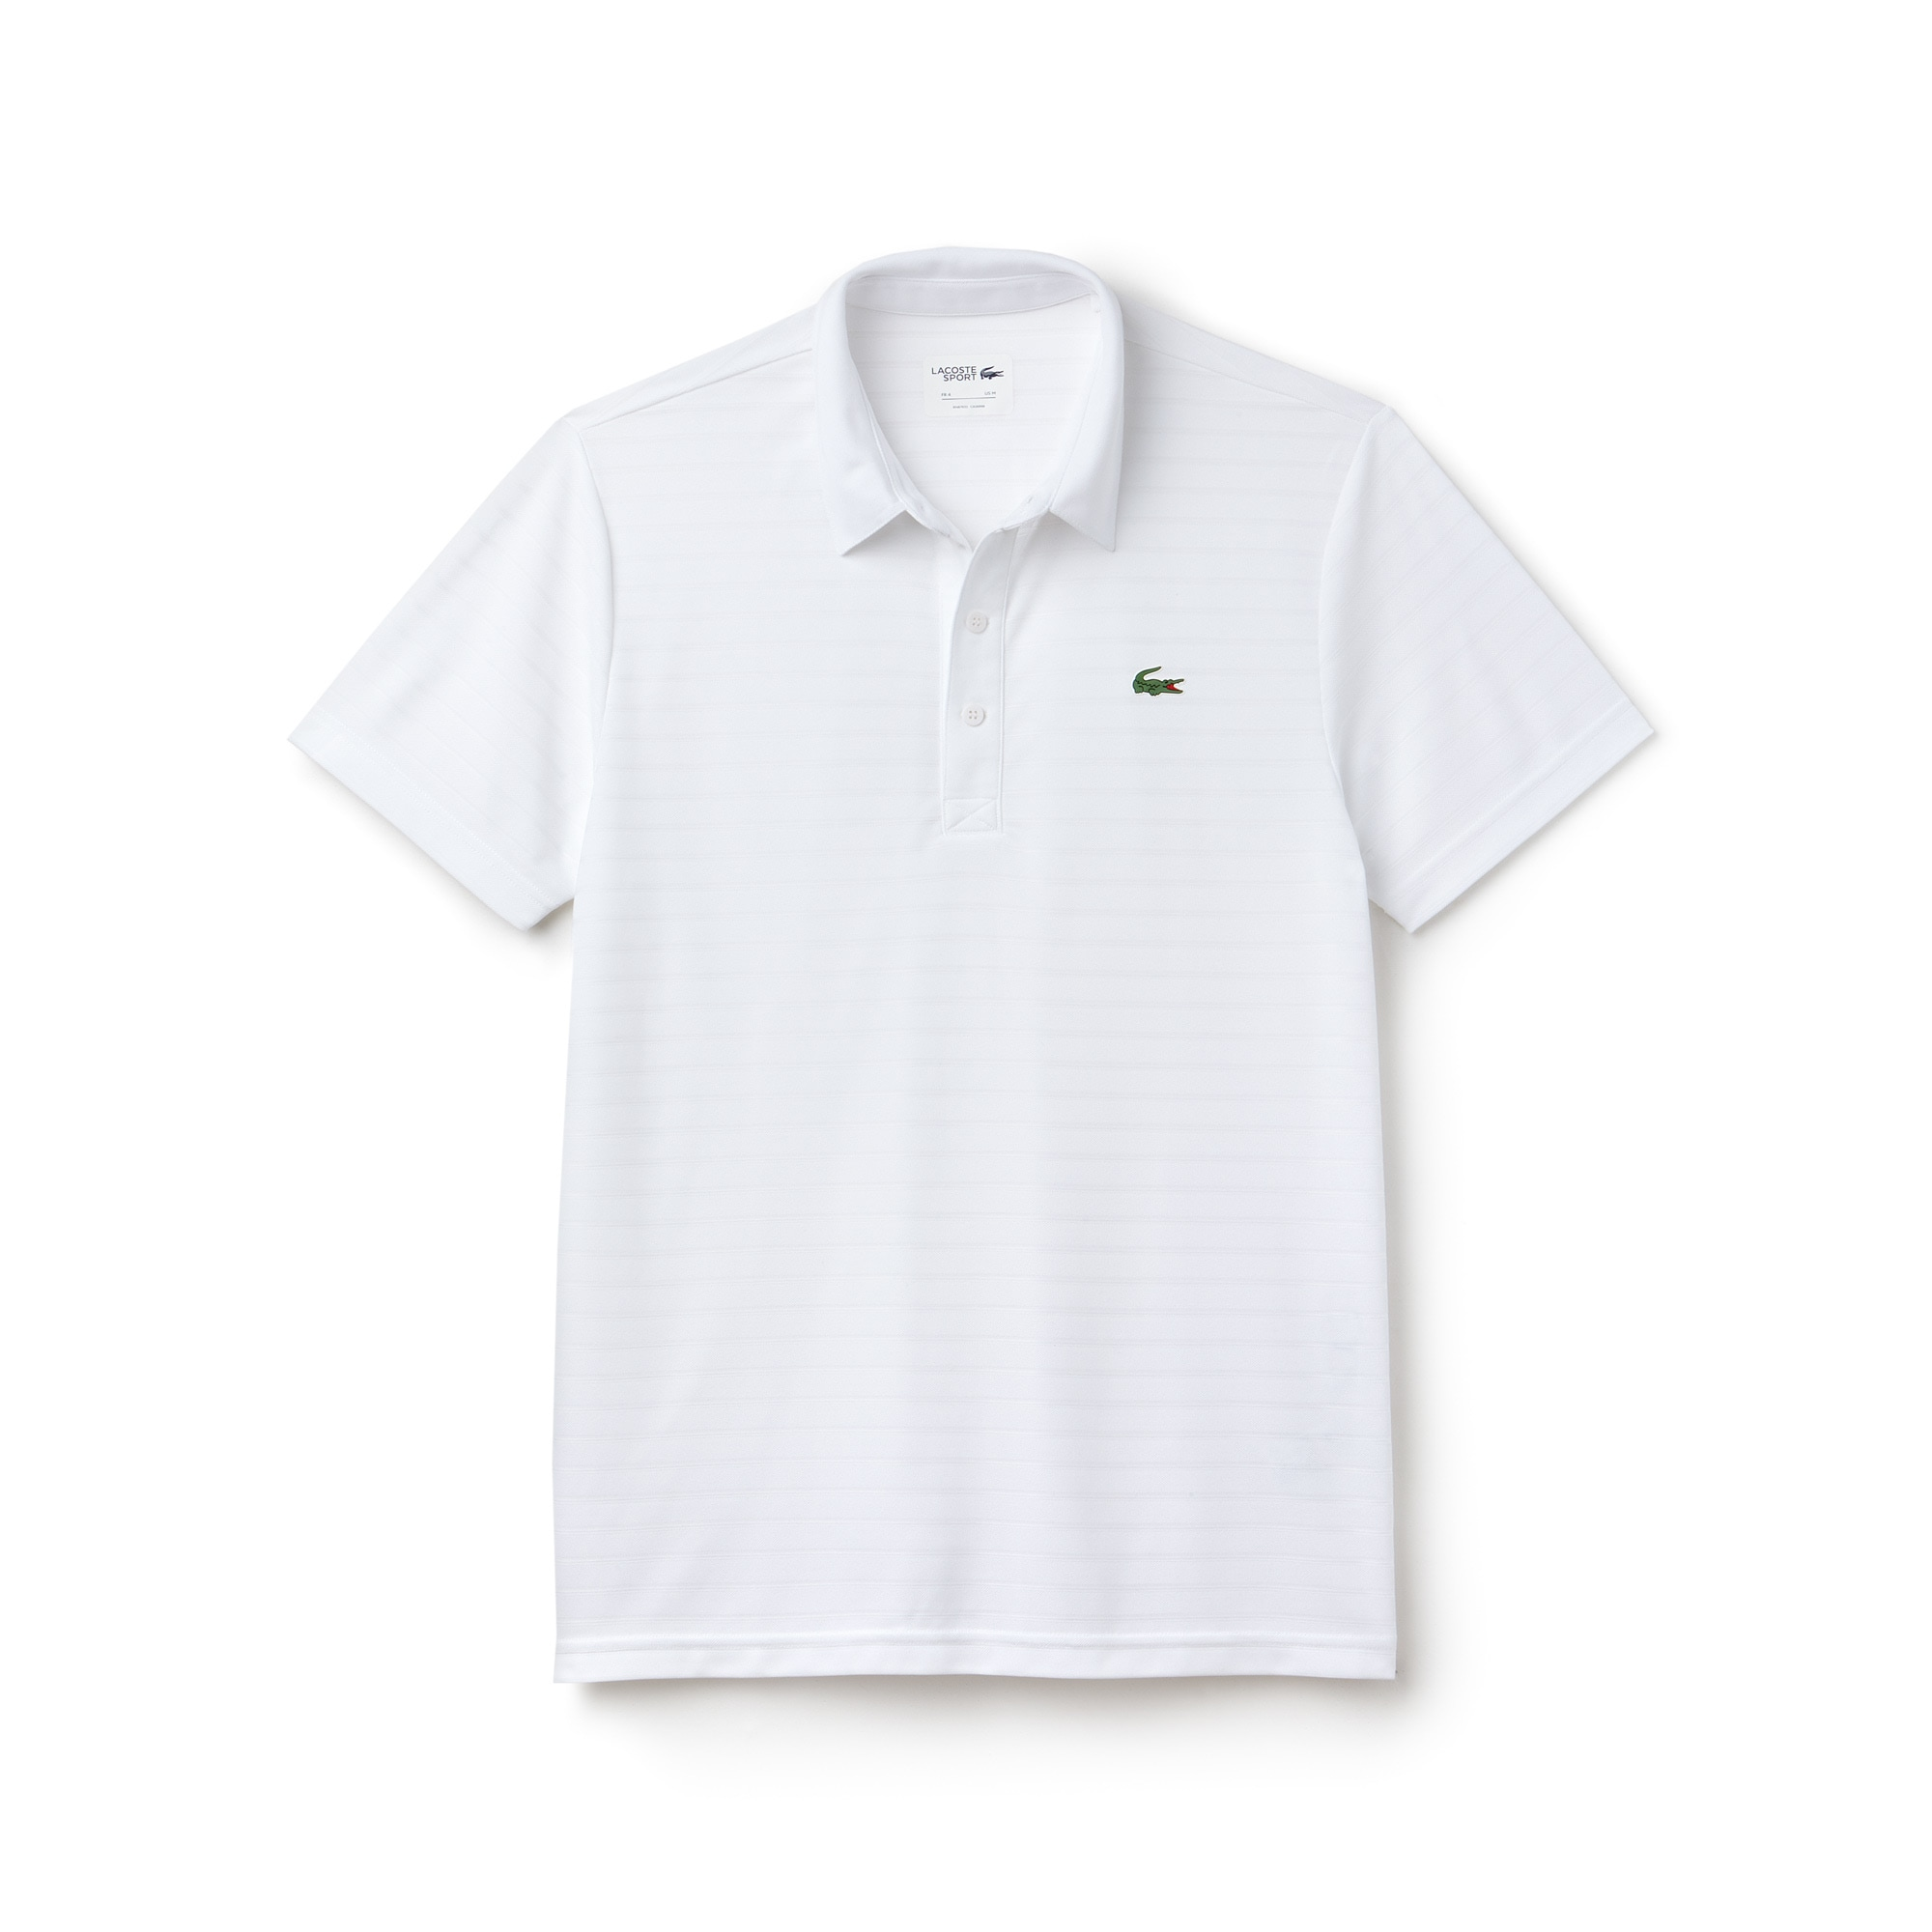 Mens 라코스테 Lacoste SPORT Golf Striped Tech Jacquard Jersey Polo Shirt,white